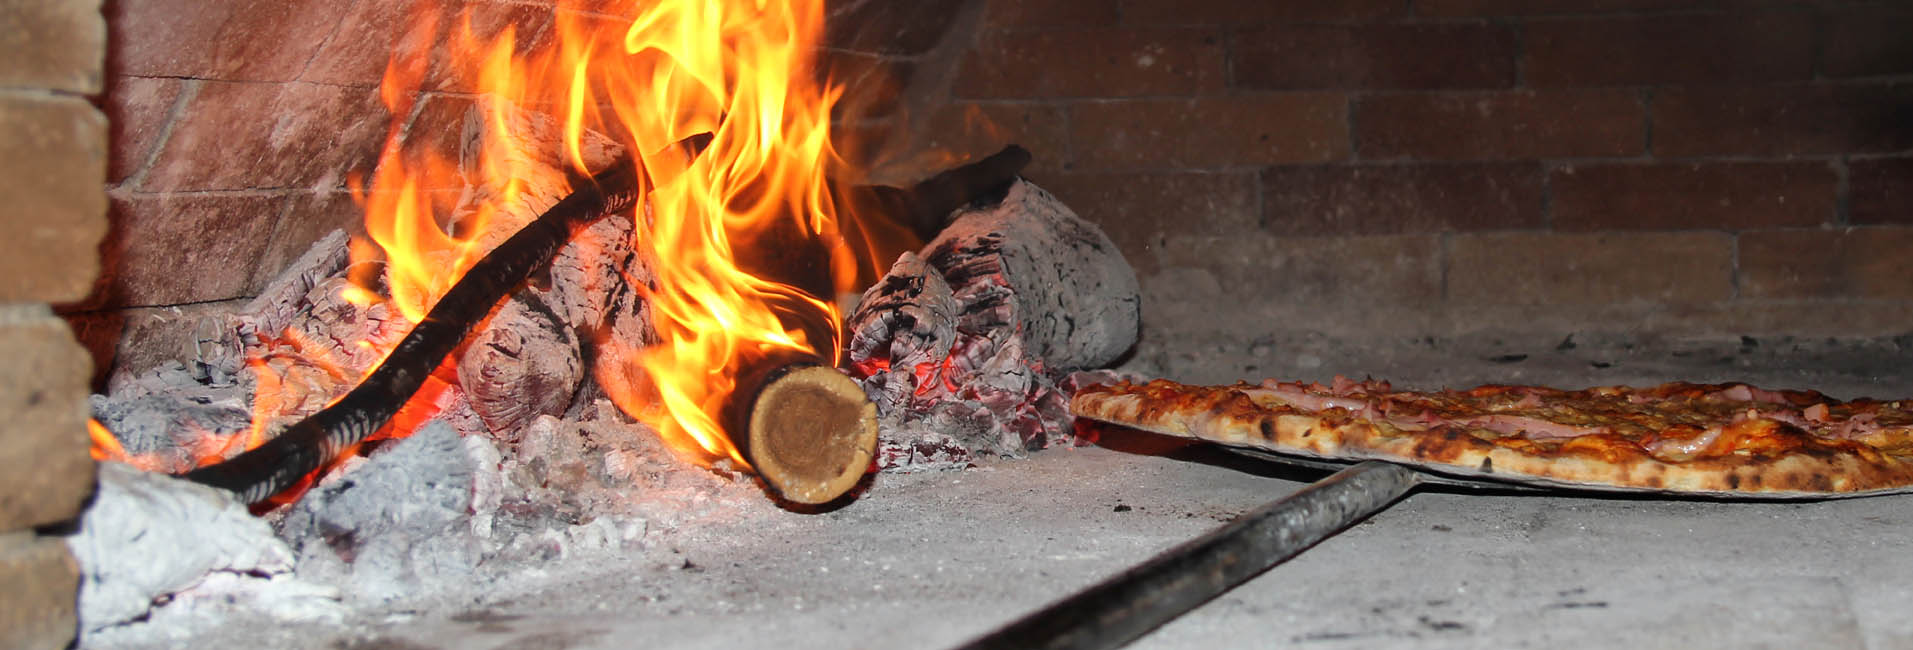 Catering Firewood